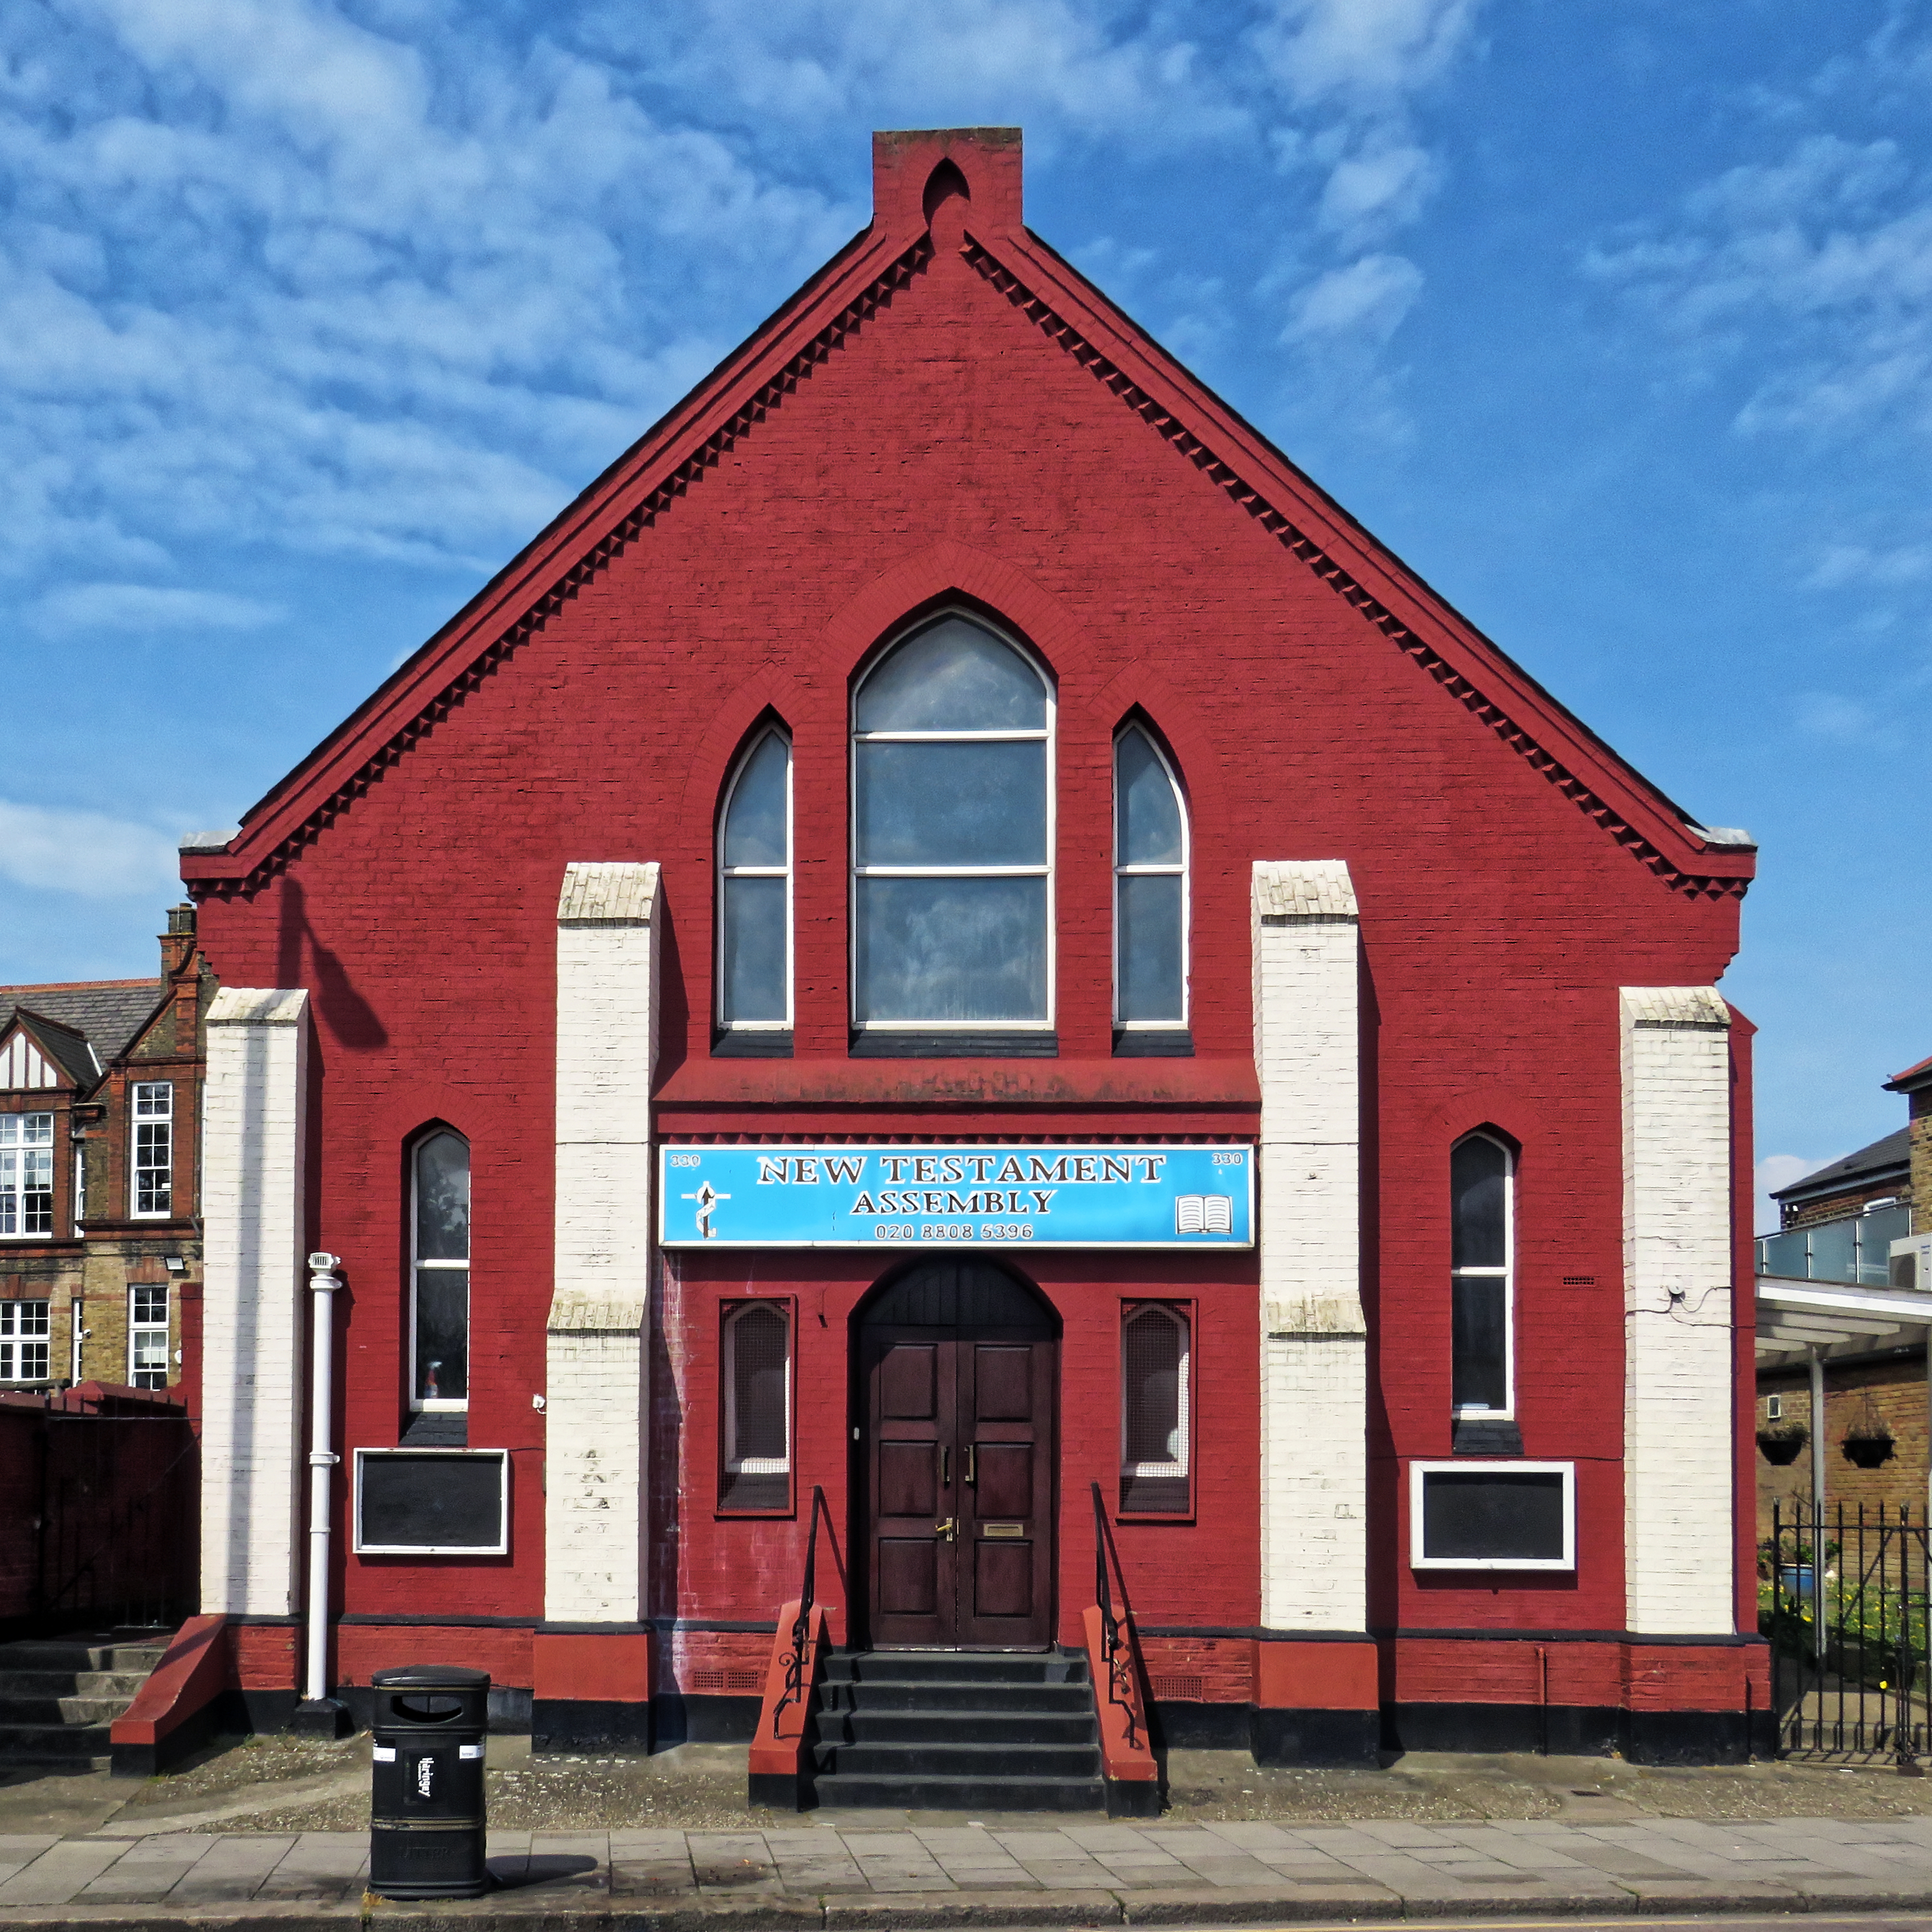 holder of this work, hereby publish it under the following license: English West Green New Testament Assembly Church on Philip Lane, Tottenham, London.